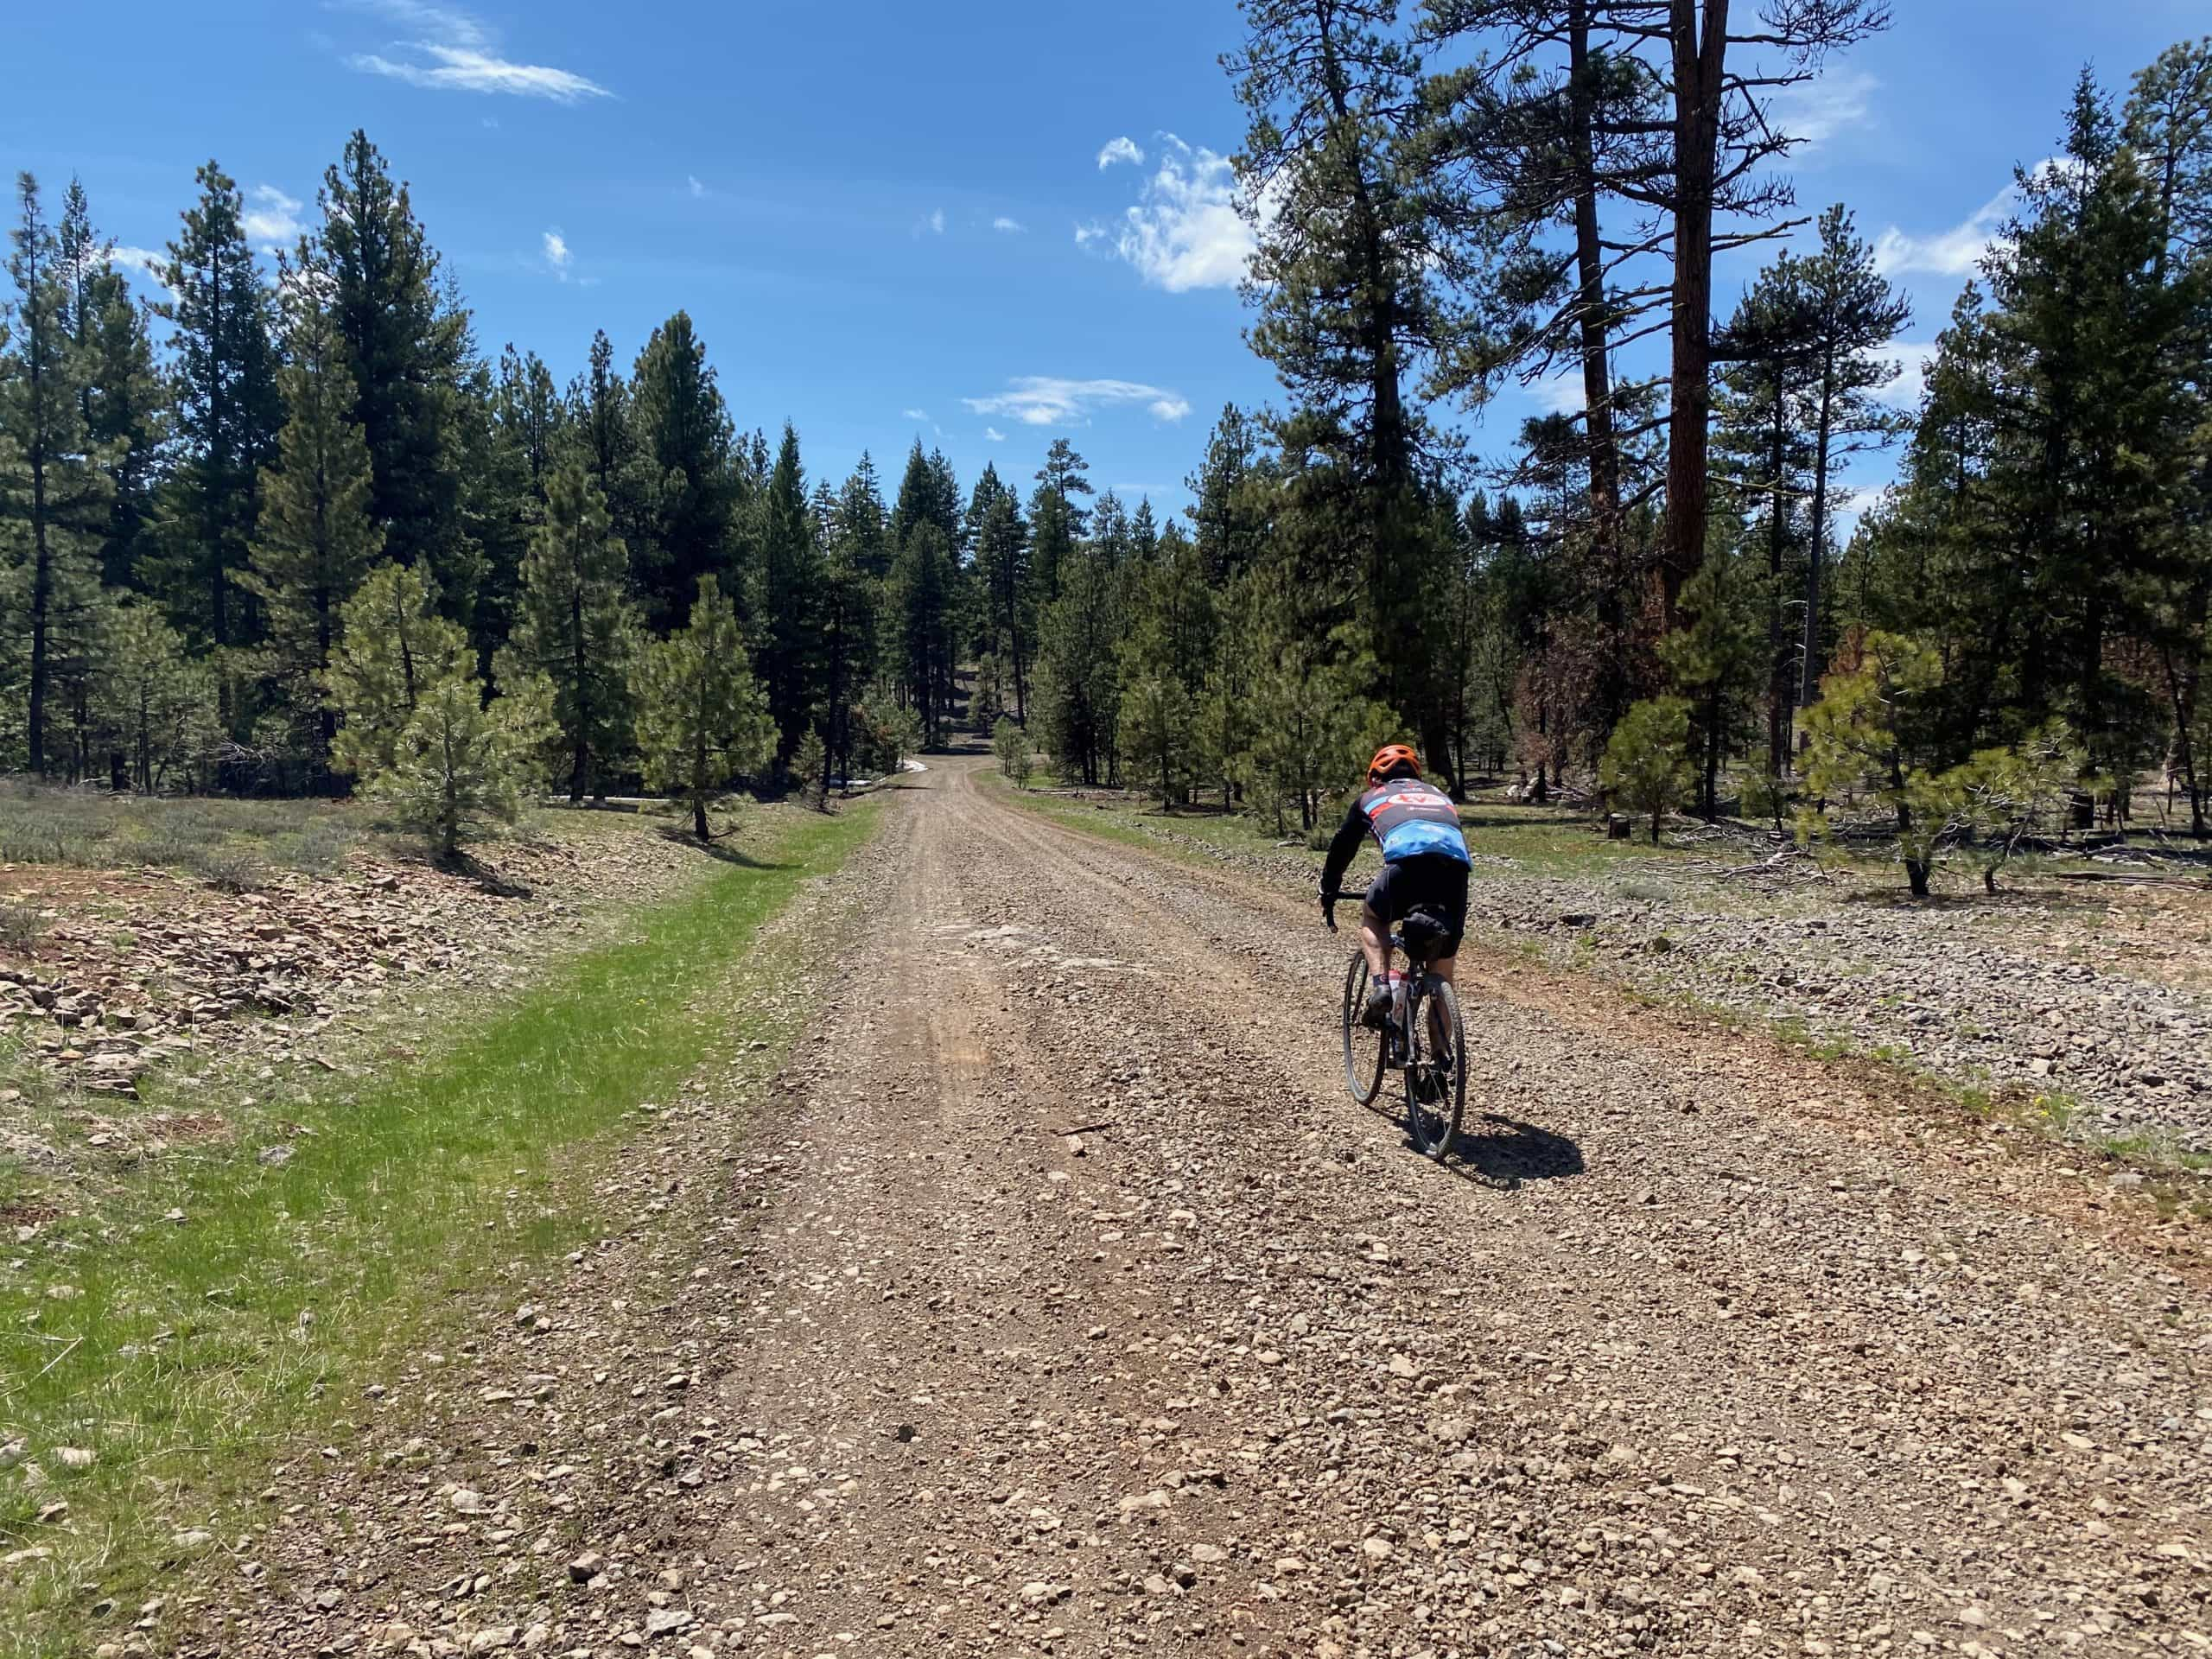 Gravel cyclist on a more primitive road in the high country of the Ochoco mountains near Prineville, OR.